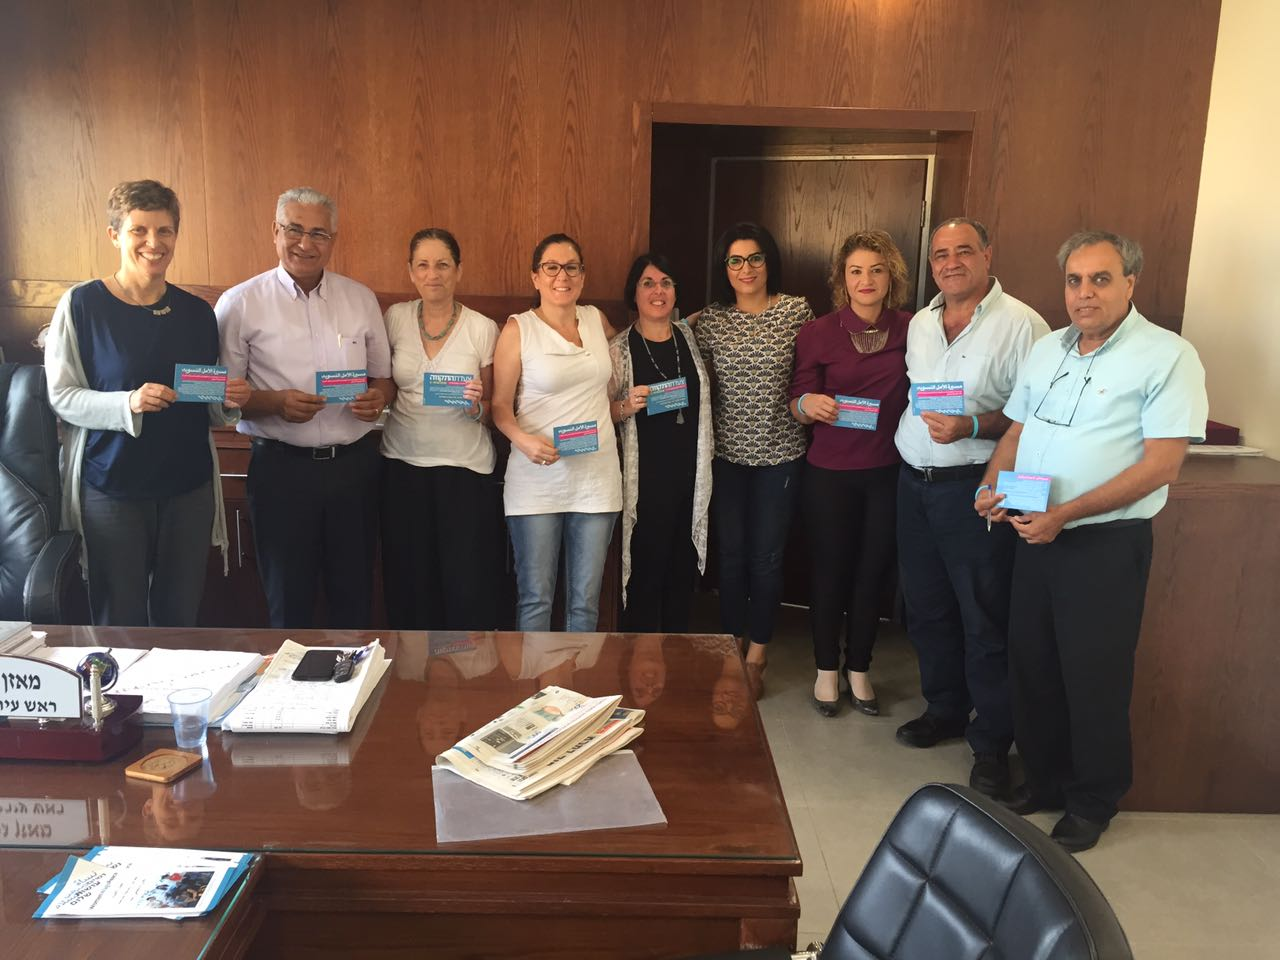 Hana Ben Yosef and WWP representatives in Sakhnin municipality